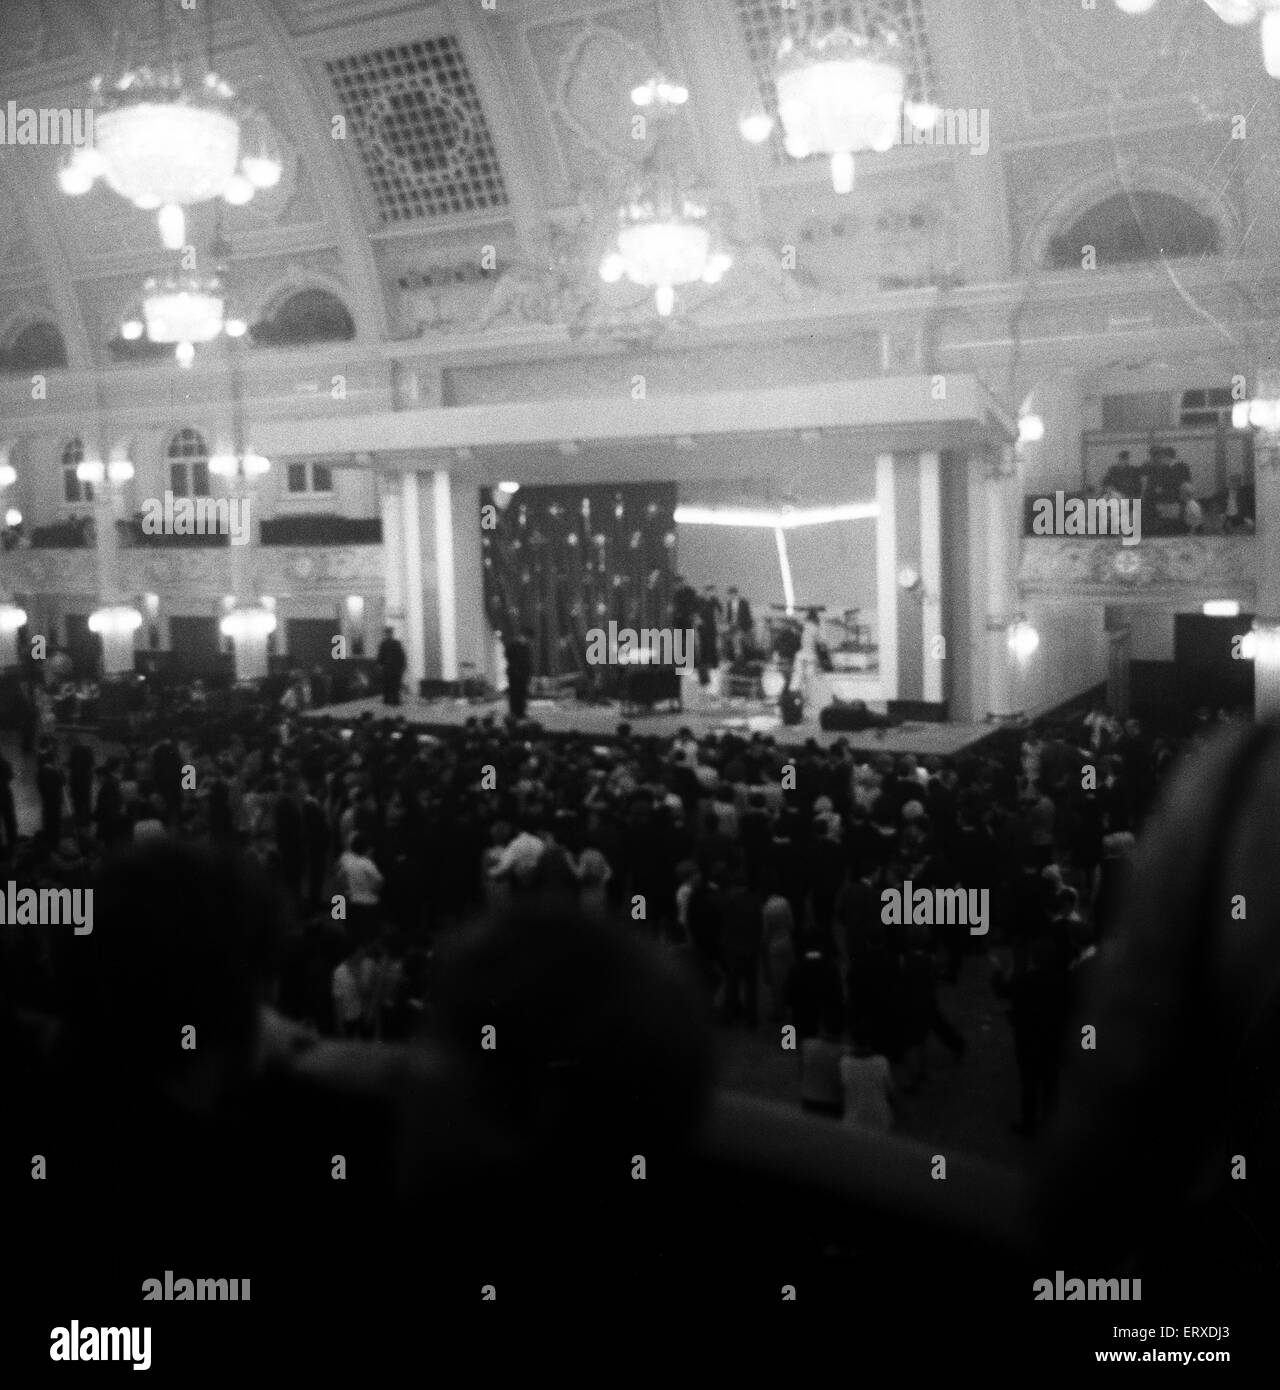 empress ballroom stock photos u0026 empress ballroom stock images alamy